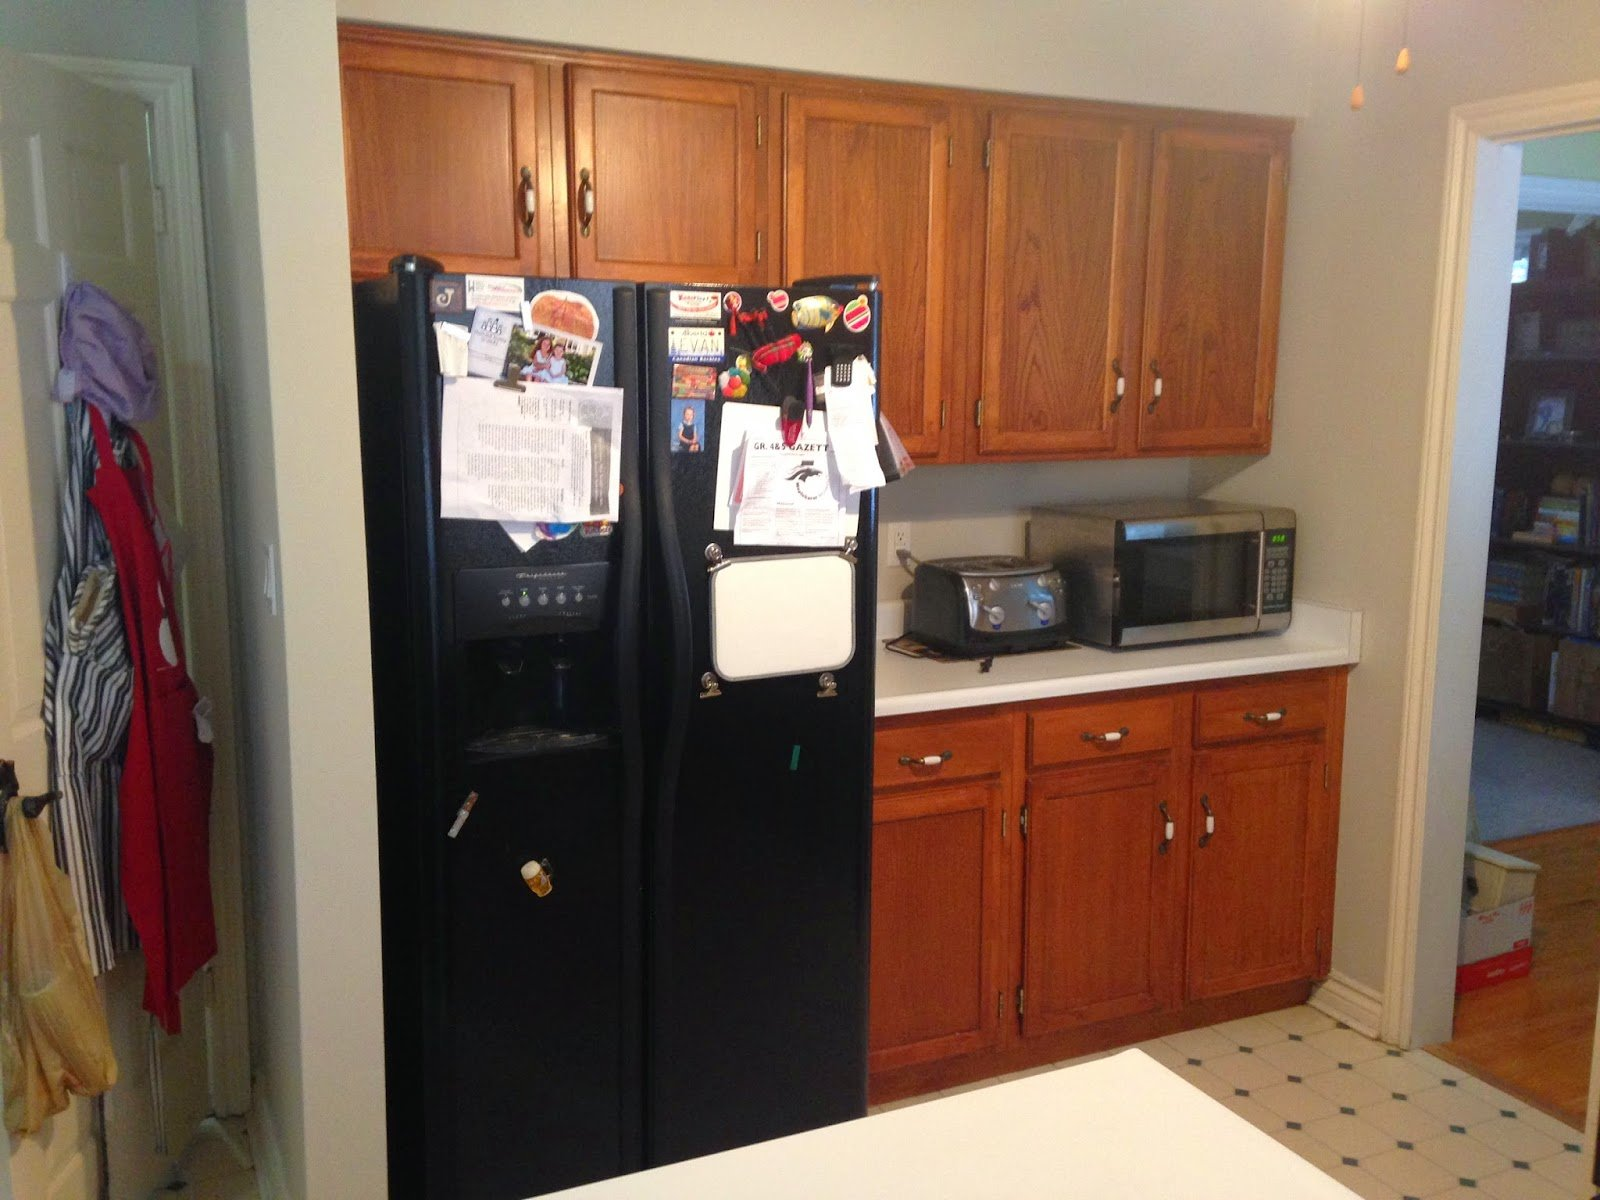 Black fridge and old cupboards.